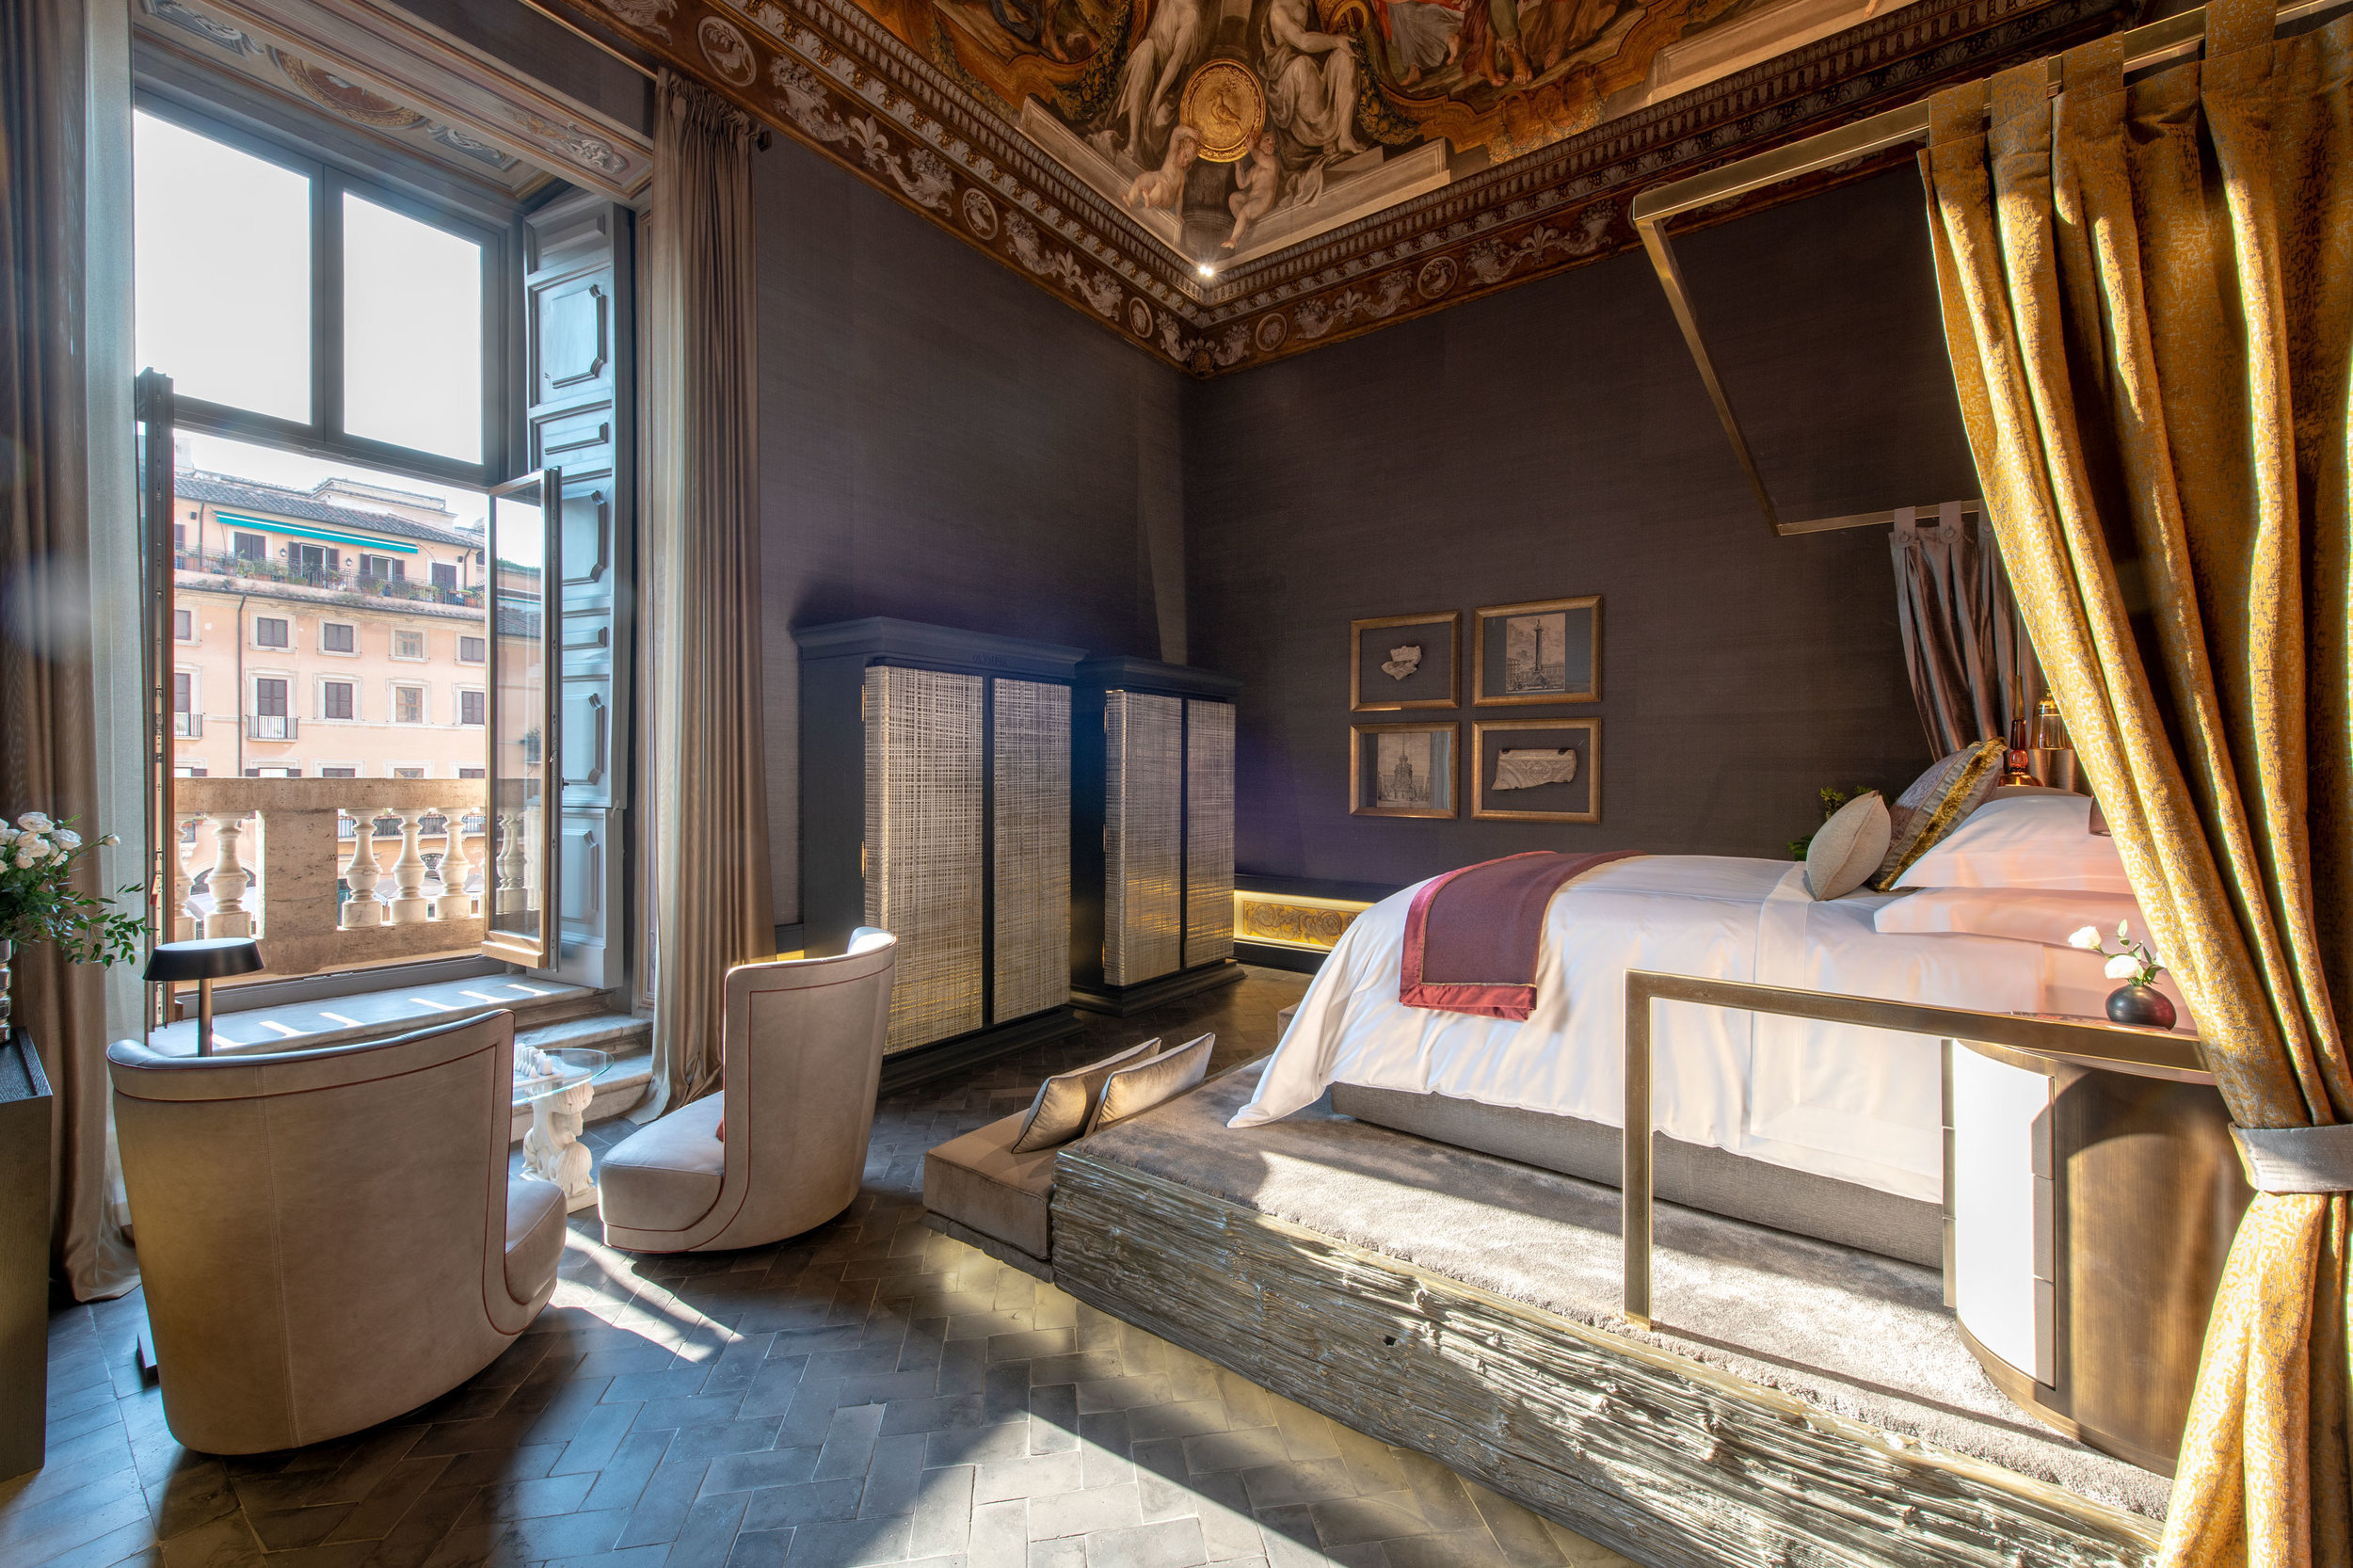 Holy Deer, Rome    Travel through time to fall asleep in Holy Deer, a formal Papal apartment now reborn as The Eternal City's most exclusive abode. Overlooking Piazza Navona, the newest jewel in the crown of the family-owned  San Lorenzo  Lodges, is a 350-m² opulent apartment within a palazzo built by Francesco Borromini – the leading figure of Roman Baroque architecture. Graced with stunning frescoes and balancing past with present, Holy Deer oozes history but provides every luxury of a stylish urban retreat.